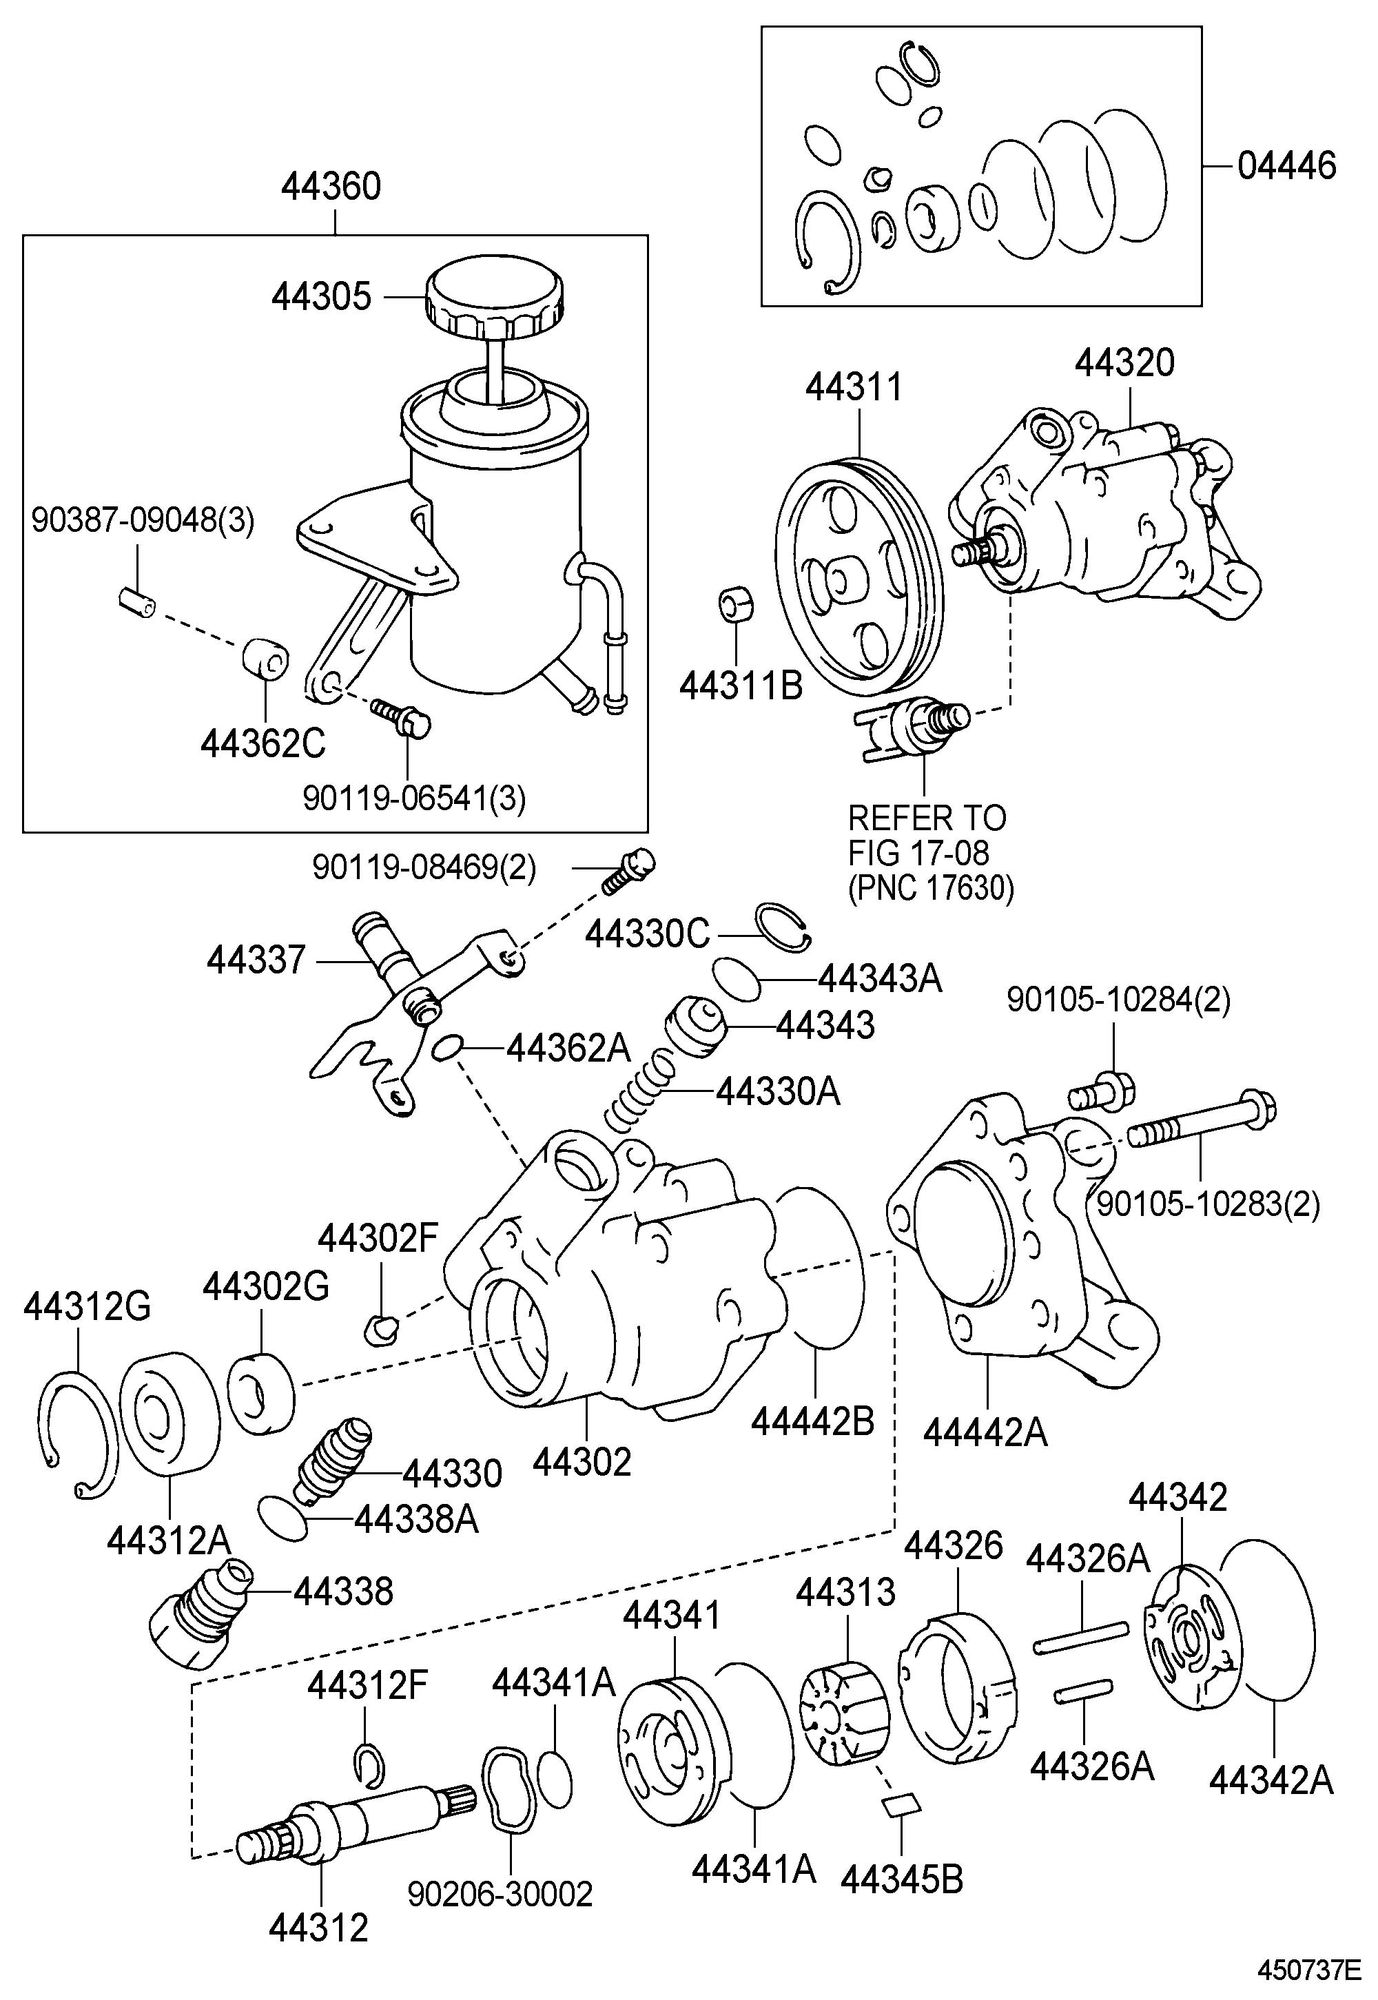 Exploded lexus parts diagram of 1998 ls400 p s pump internals lexus shop manual and parts list outlines the individual pump vanes are tolerance specific